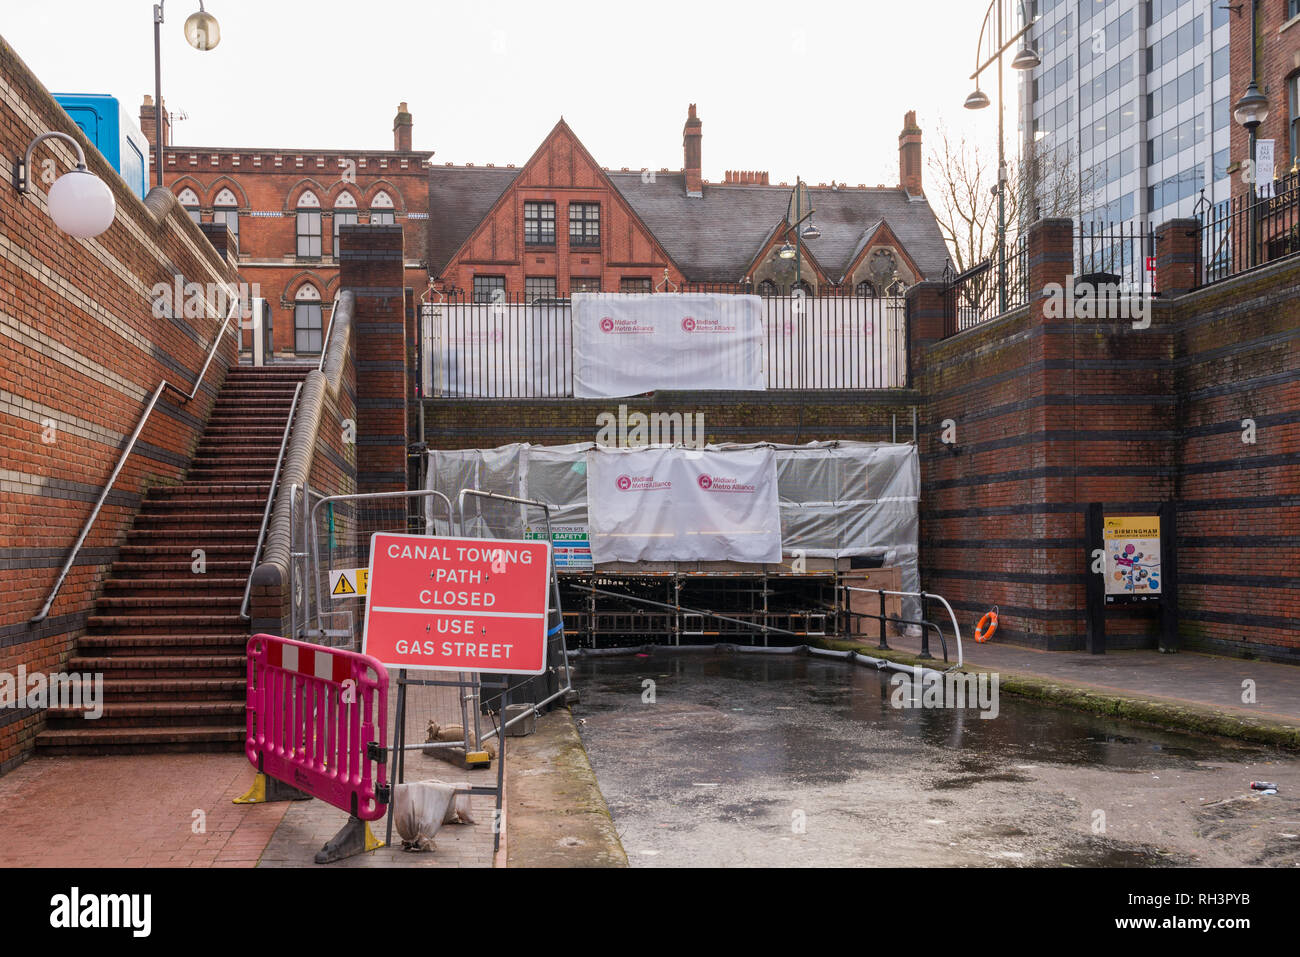 Canal and towpath under Broad Street, Birmingham is closed whilst work is undertaken for the extension of birmingham tram network - Stock Image